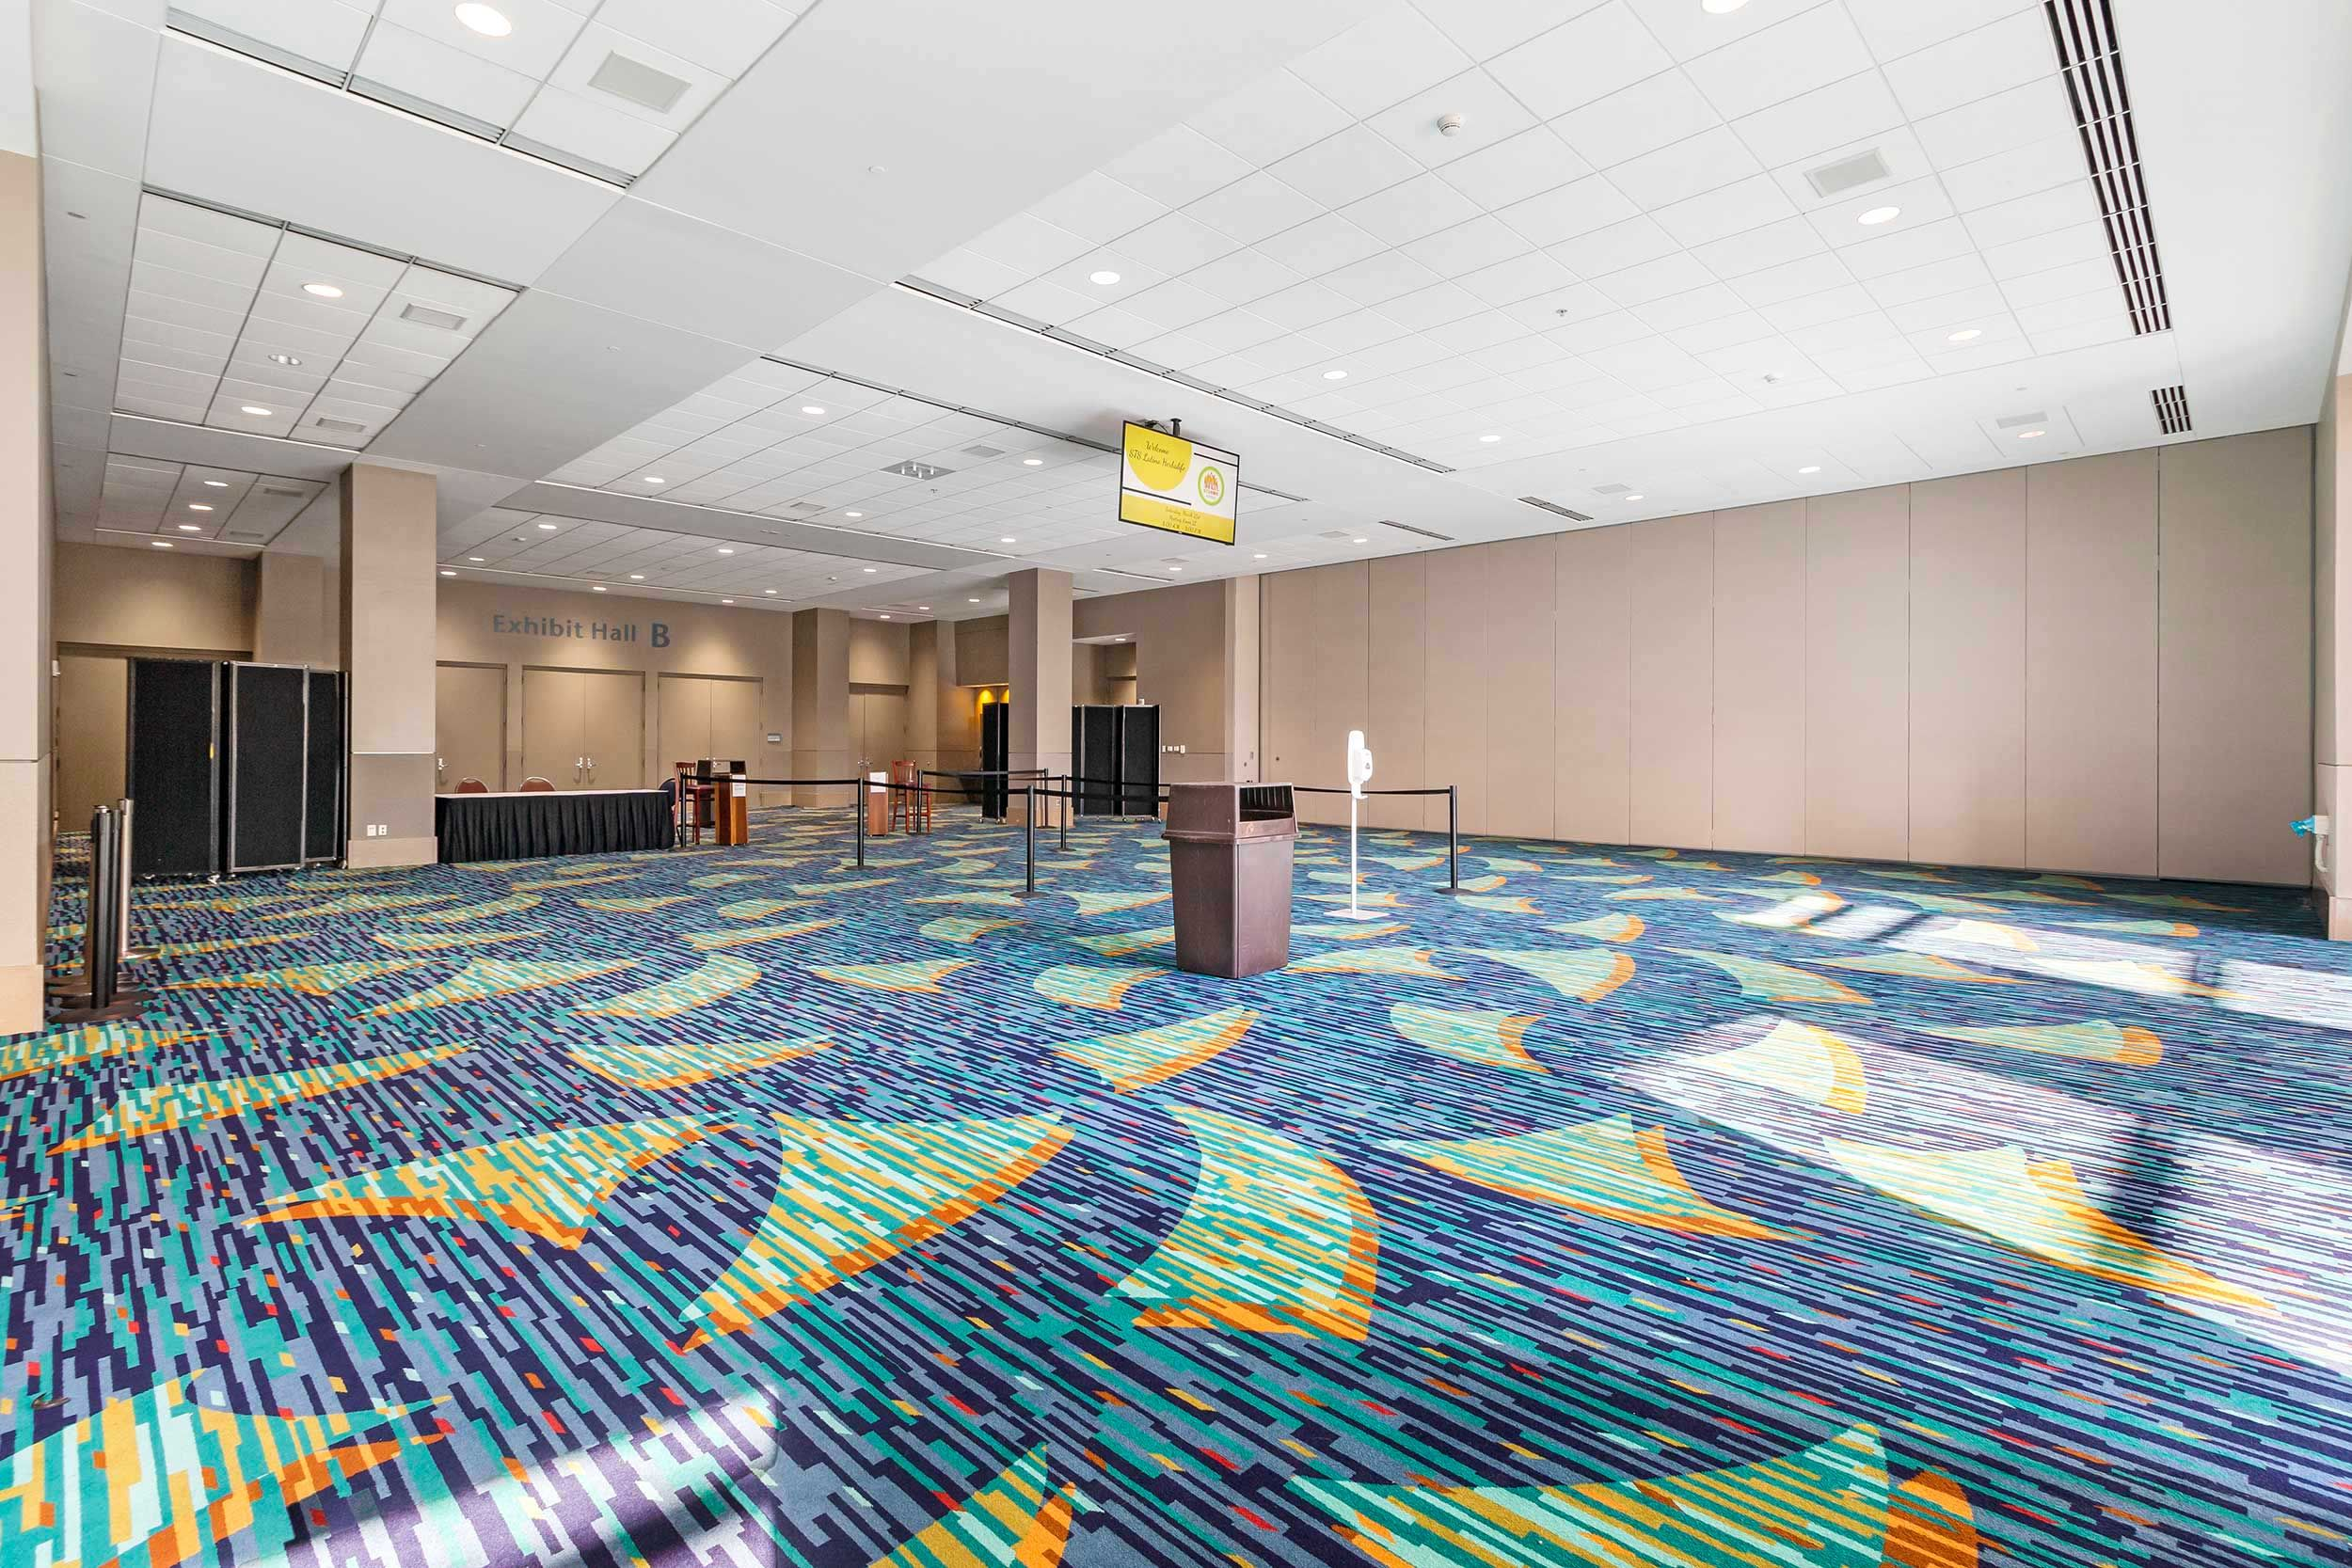 Custom Carpet For Meeting And Conference Rooms Palm Beach County Custom Carpet Palm Beach